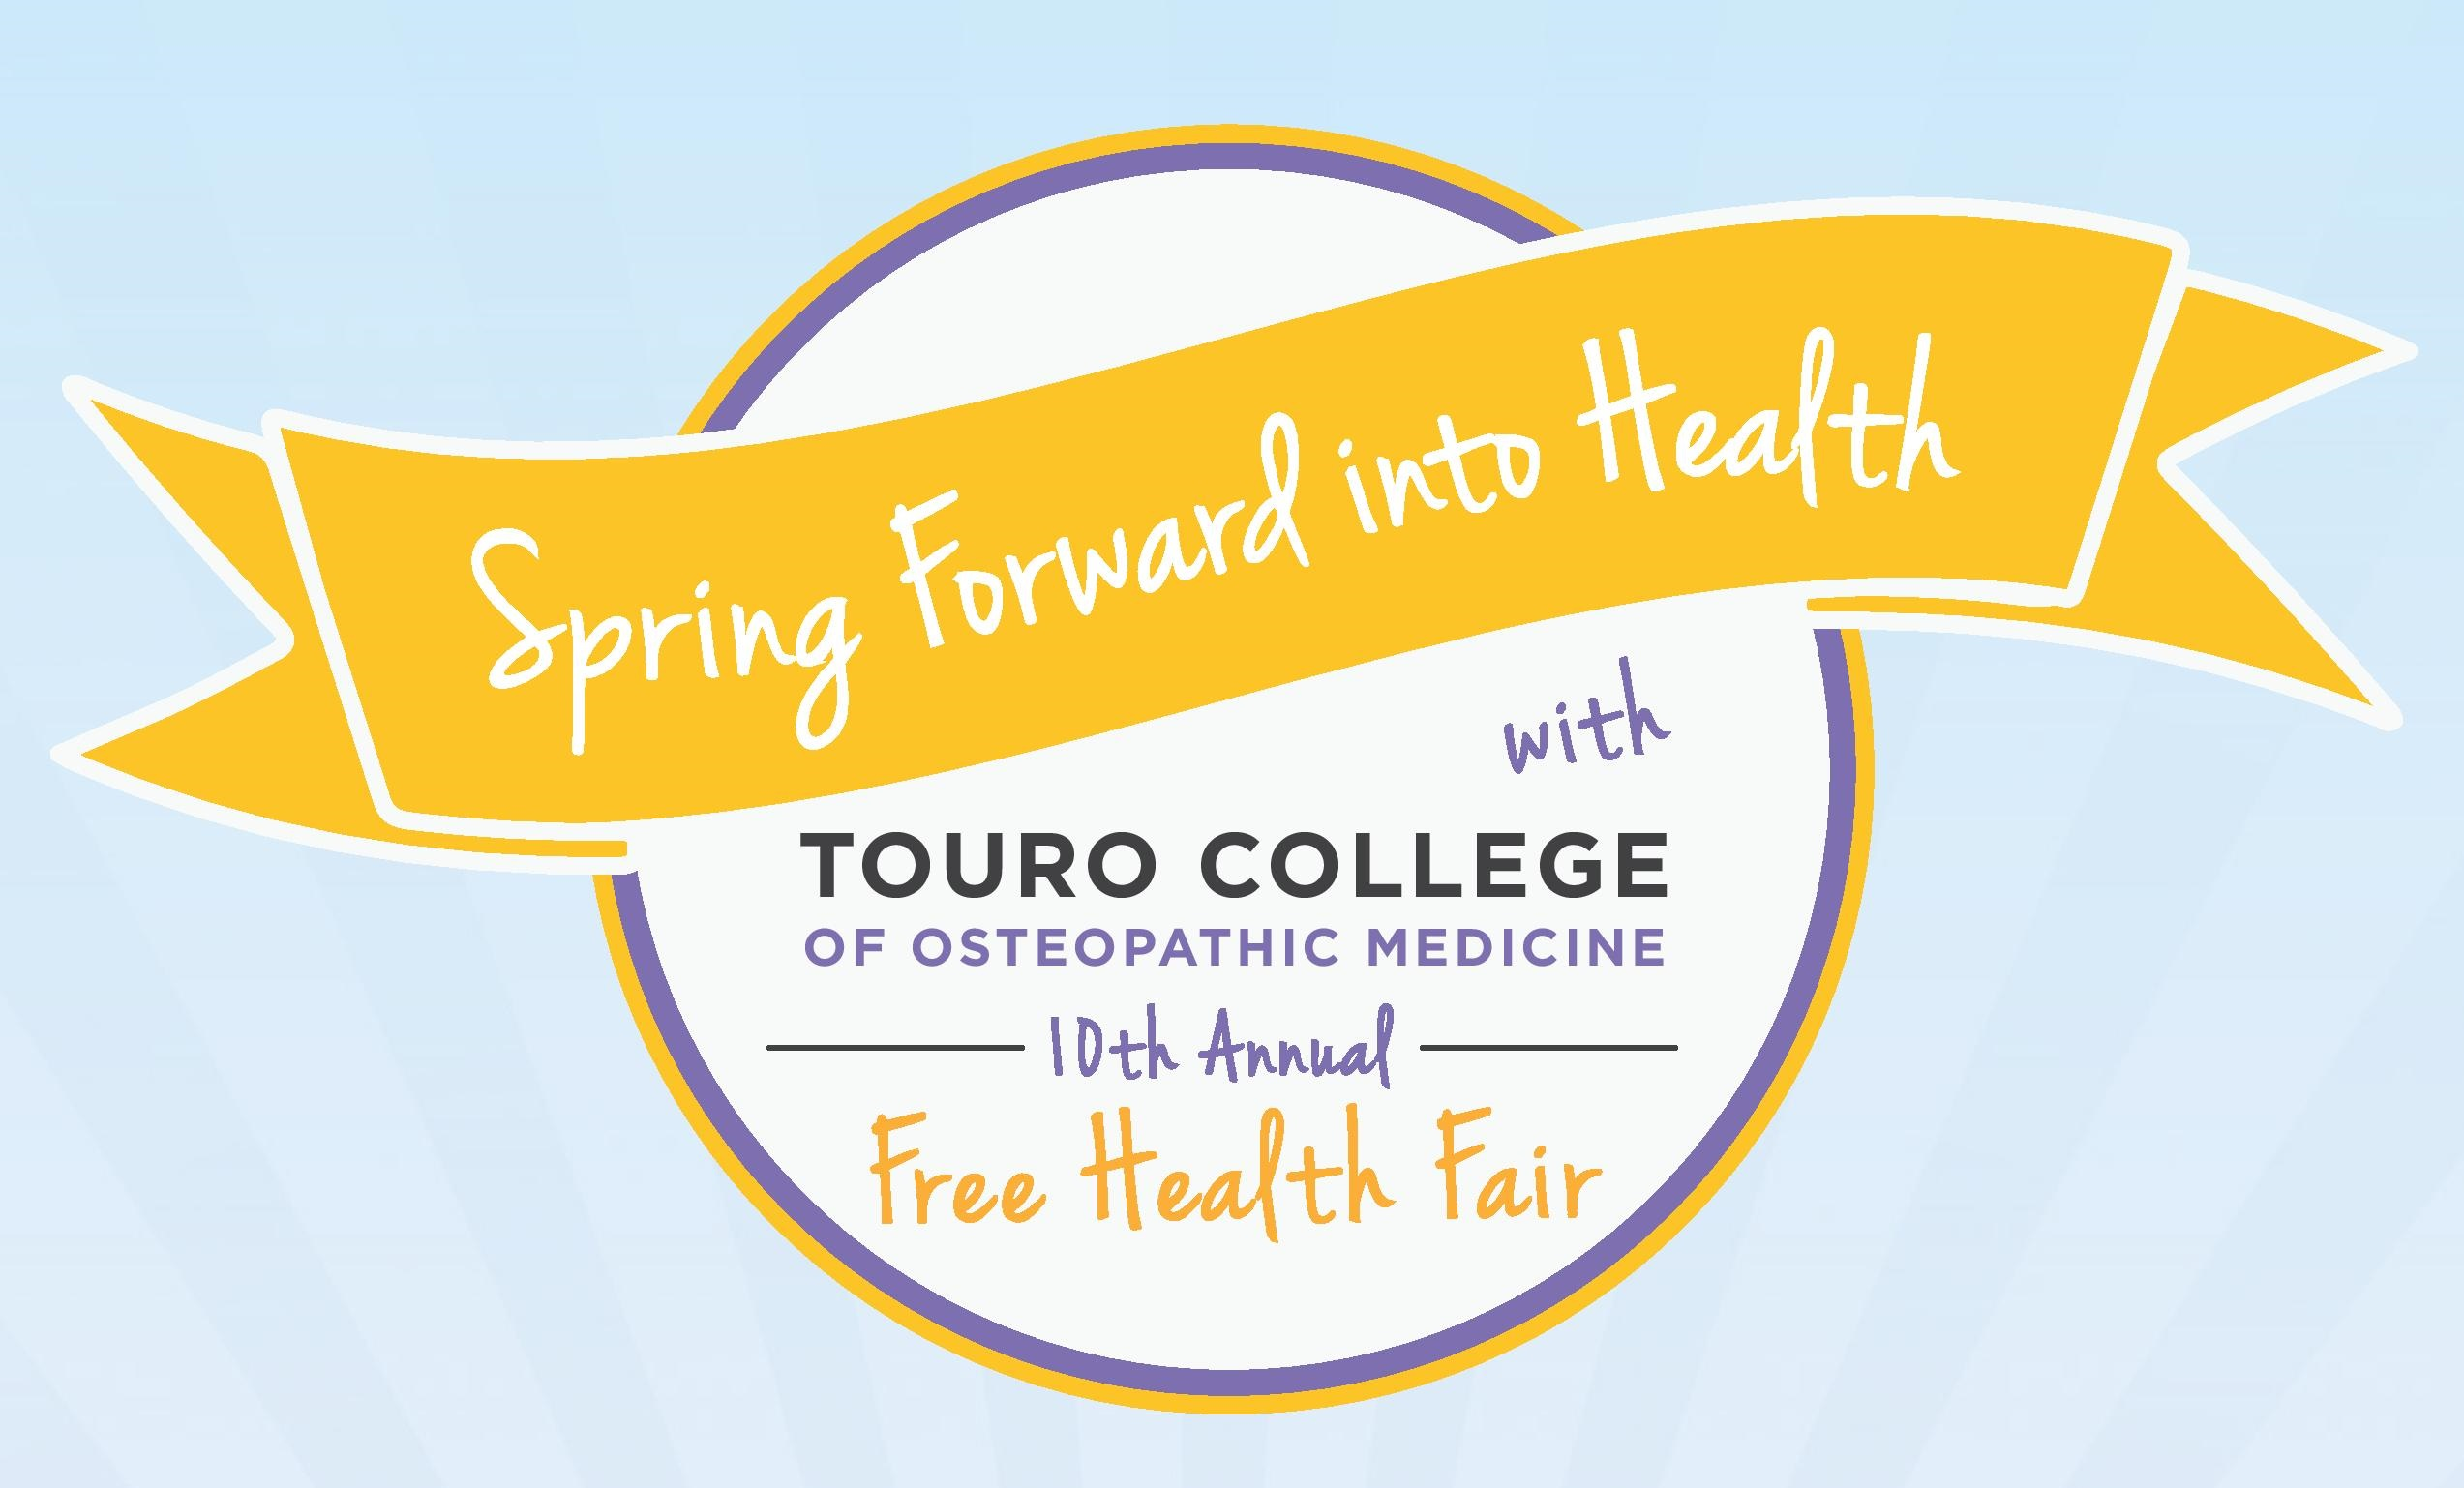 TouroCOM Harlem Spring Into Health 2018